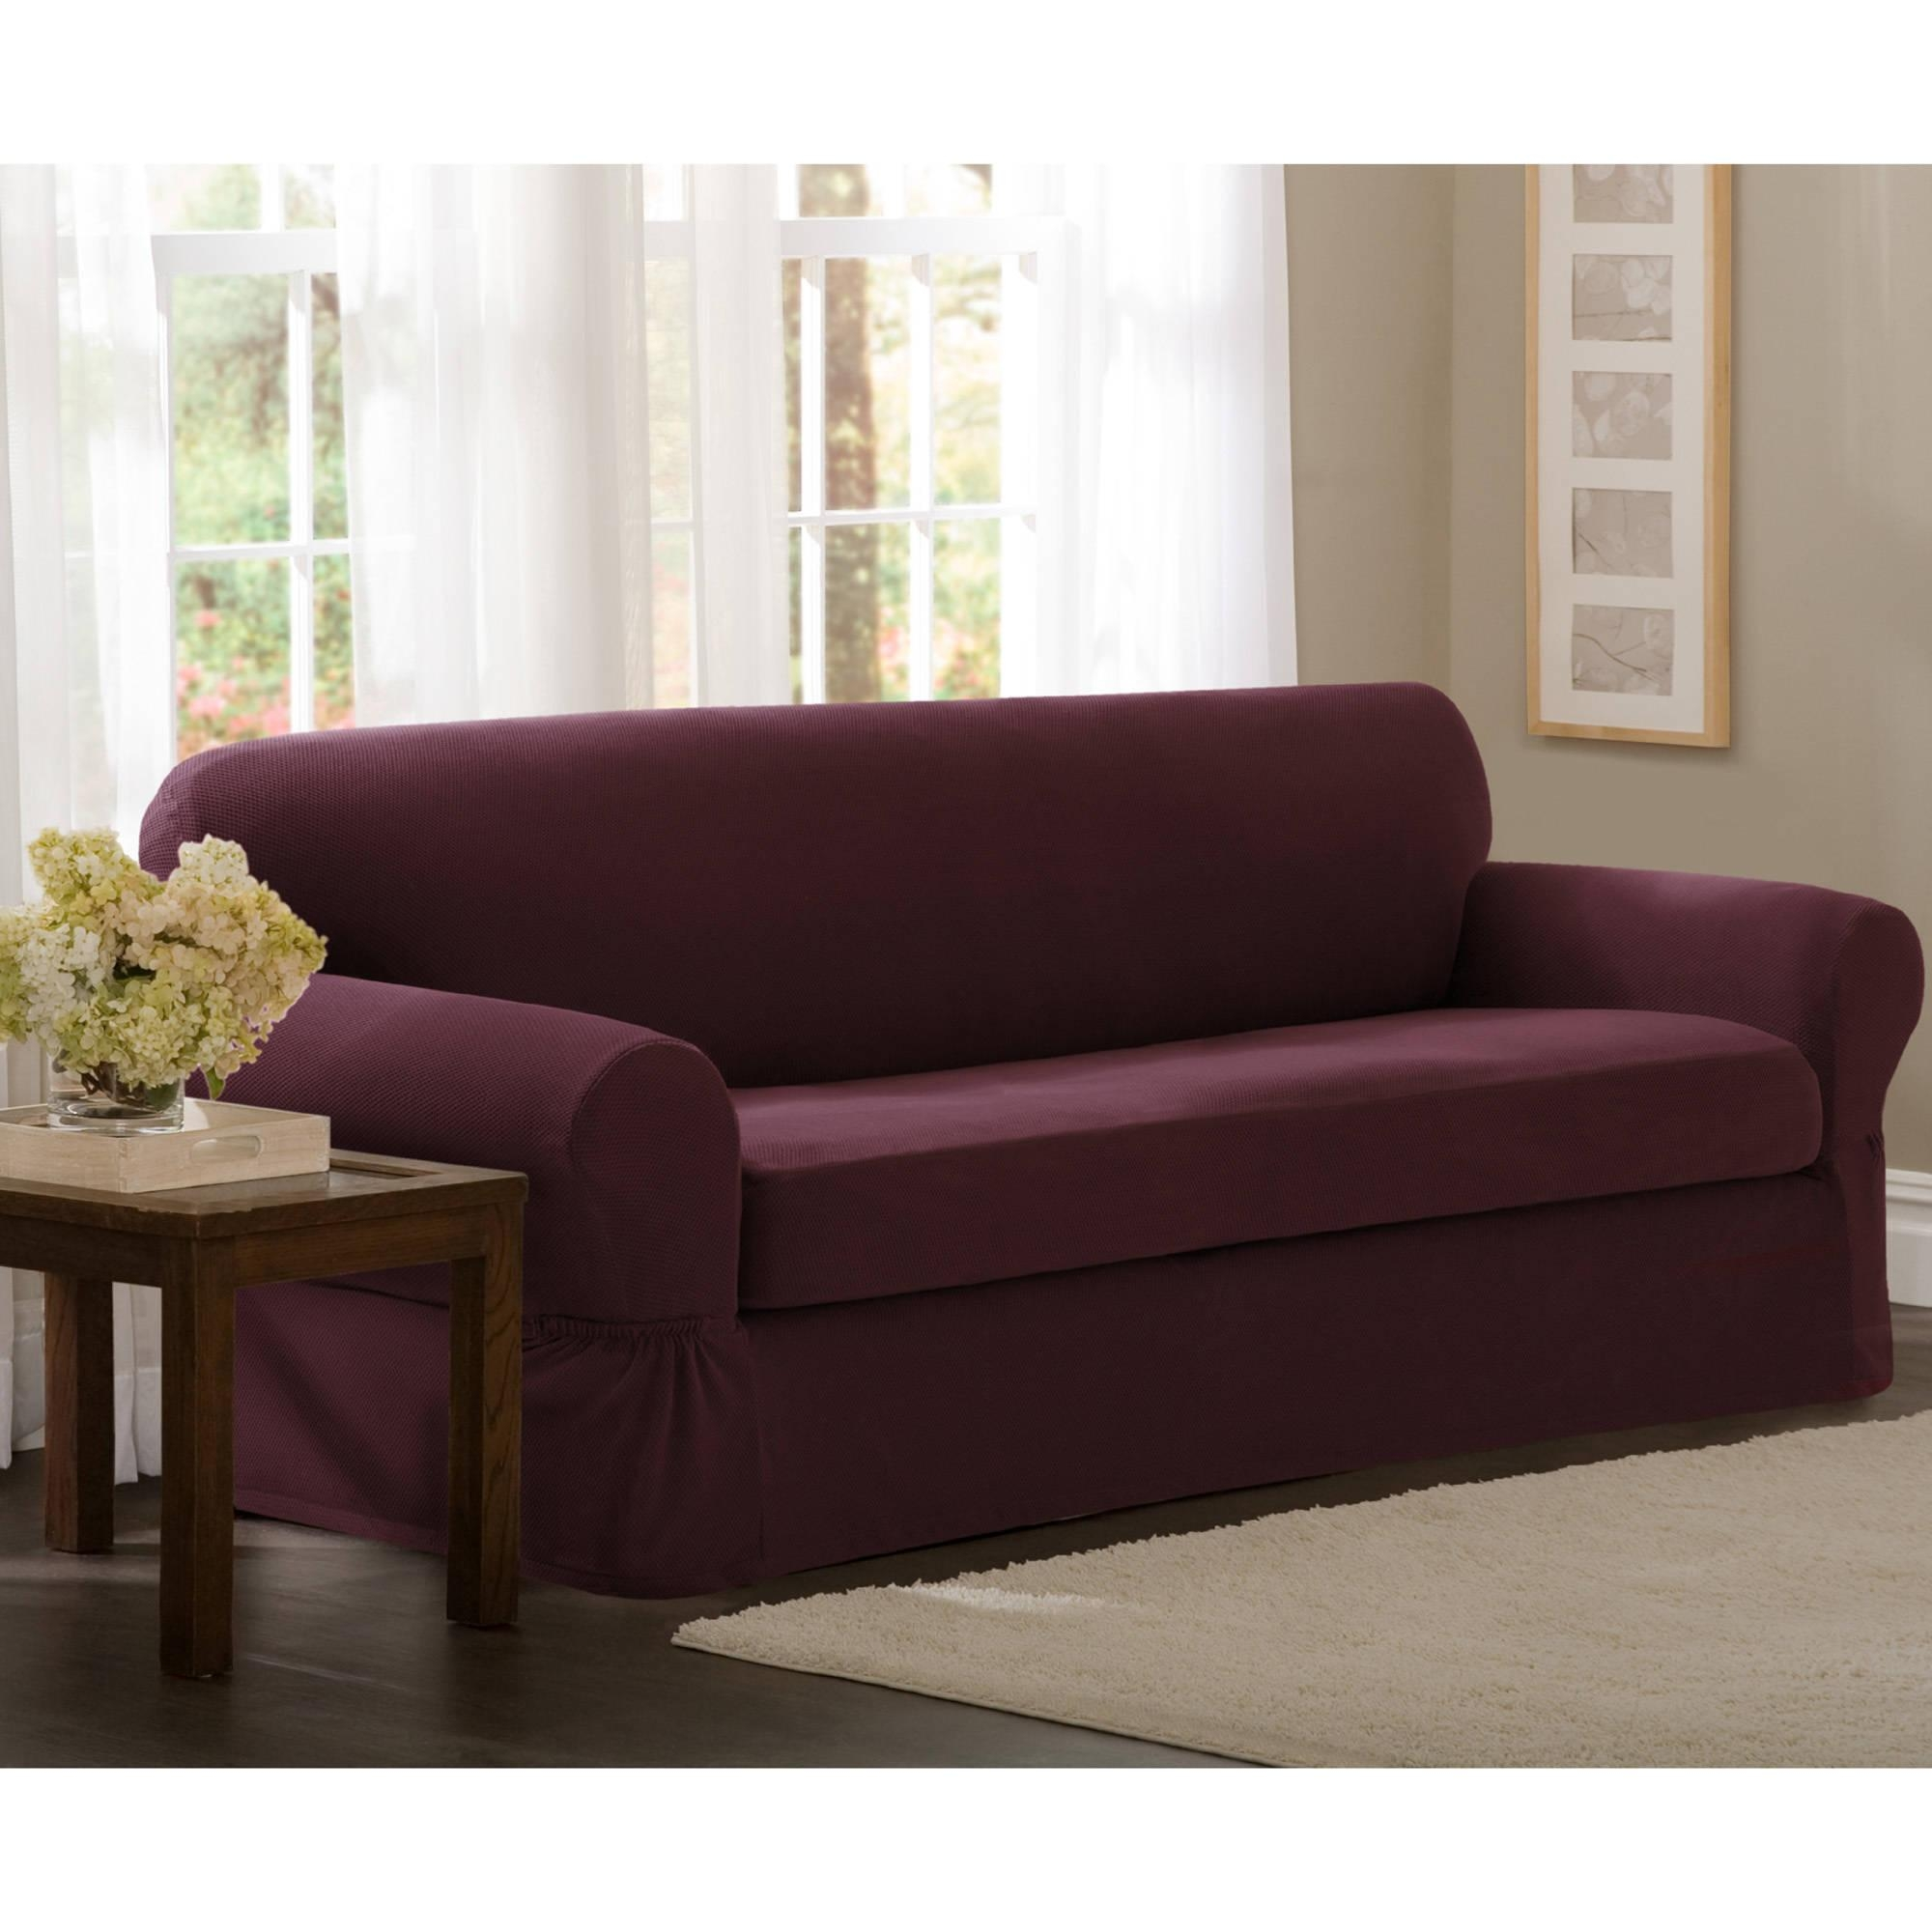 Maytex Stretch 2 Piece Sofa Slipcover – Walmart Inside 2 Piece Sofa Covers (View 2 of 27)